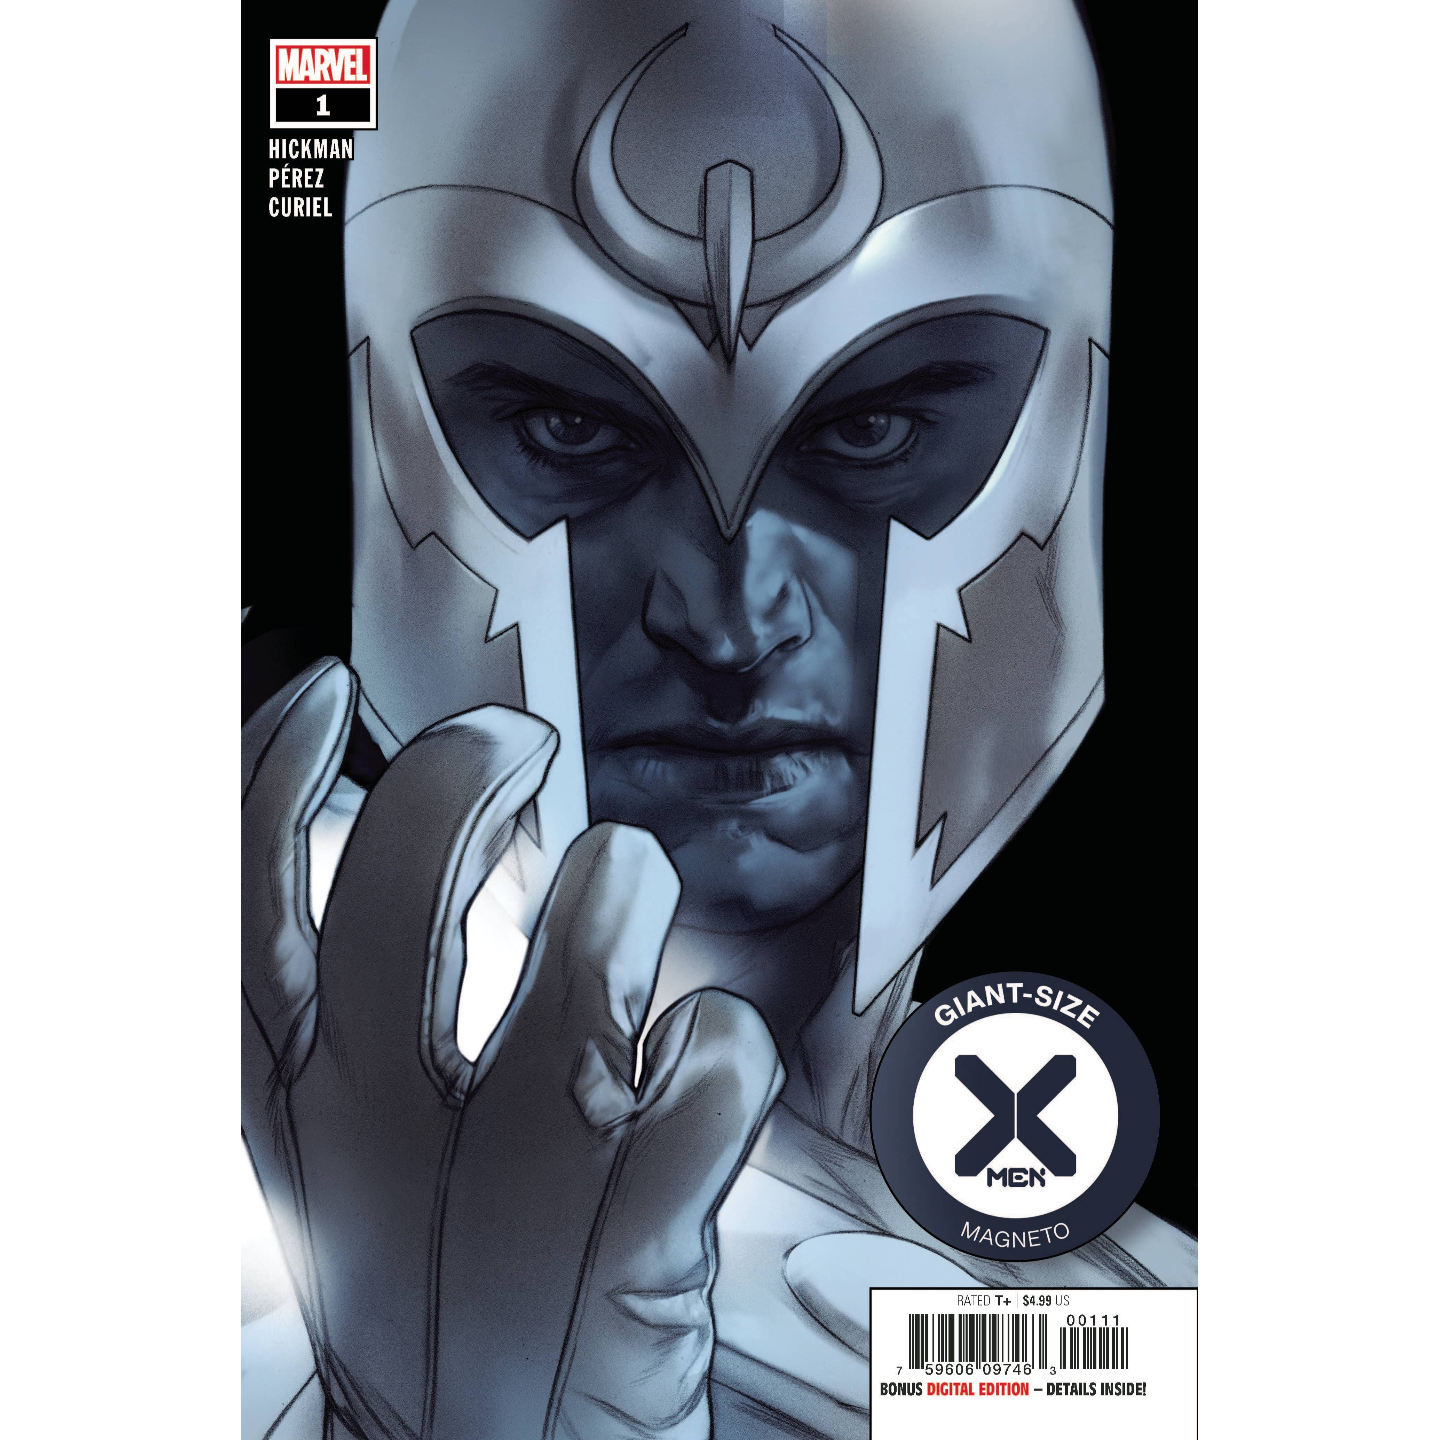 GIANT-SIZE X-MEN MAGNETO #1 DX